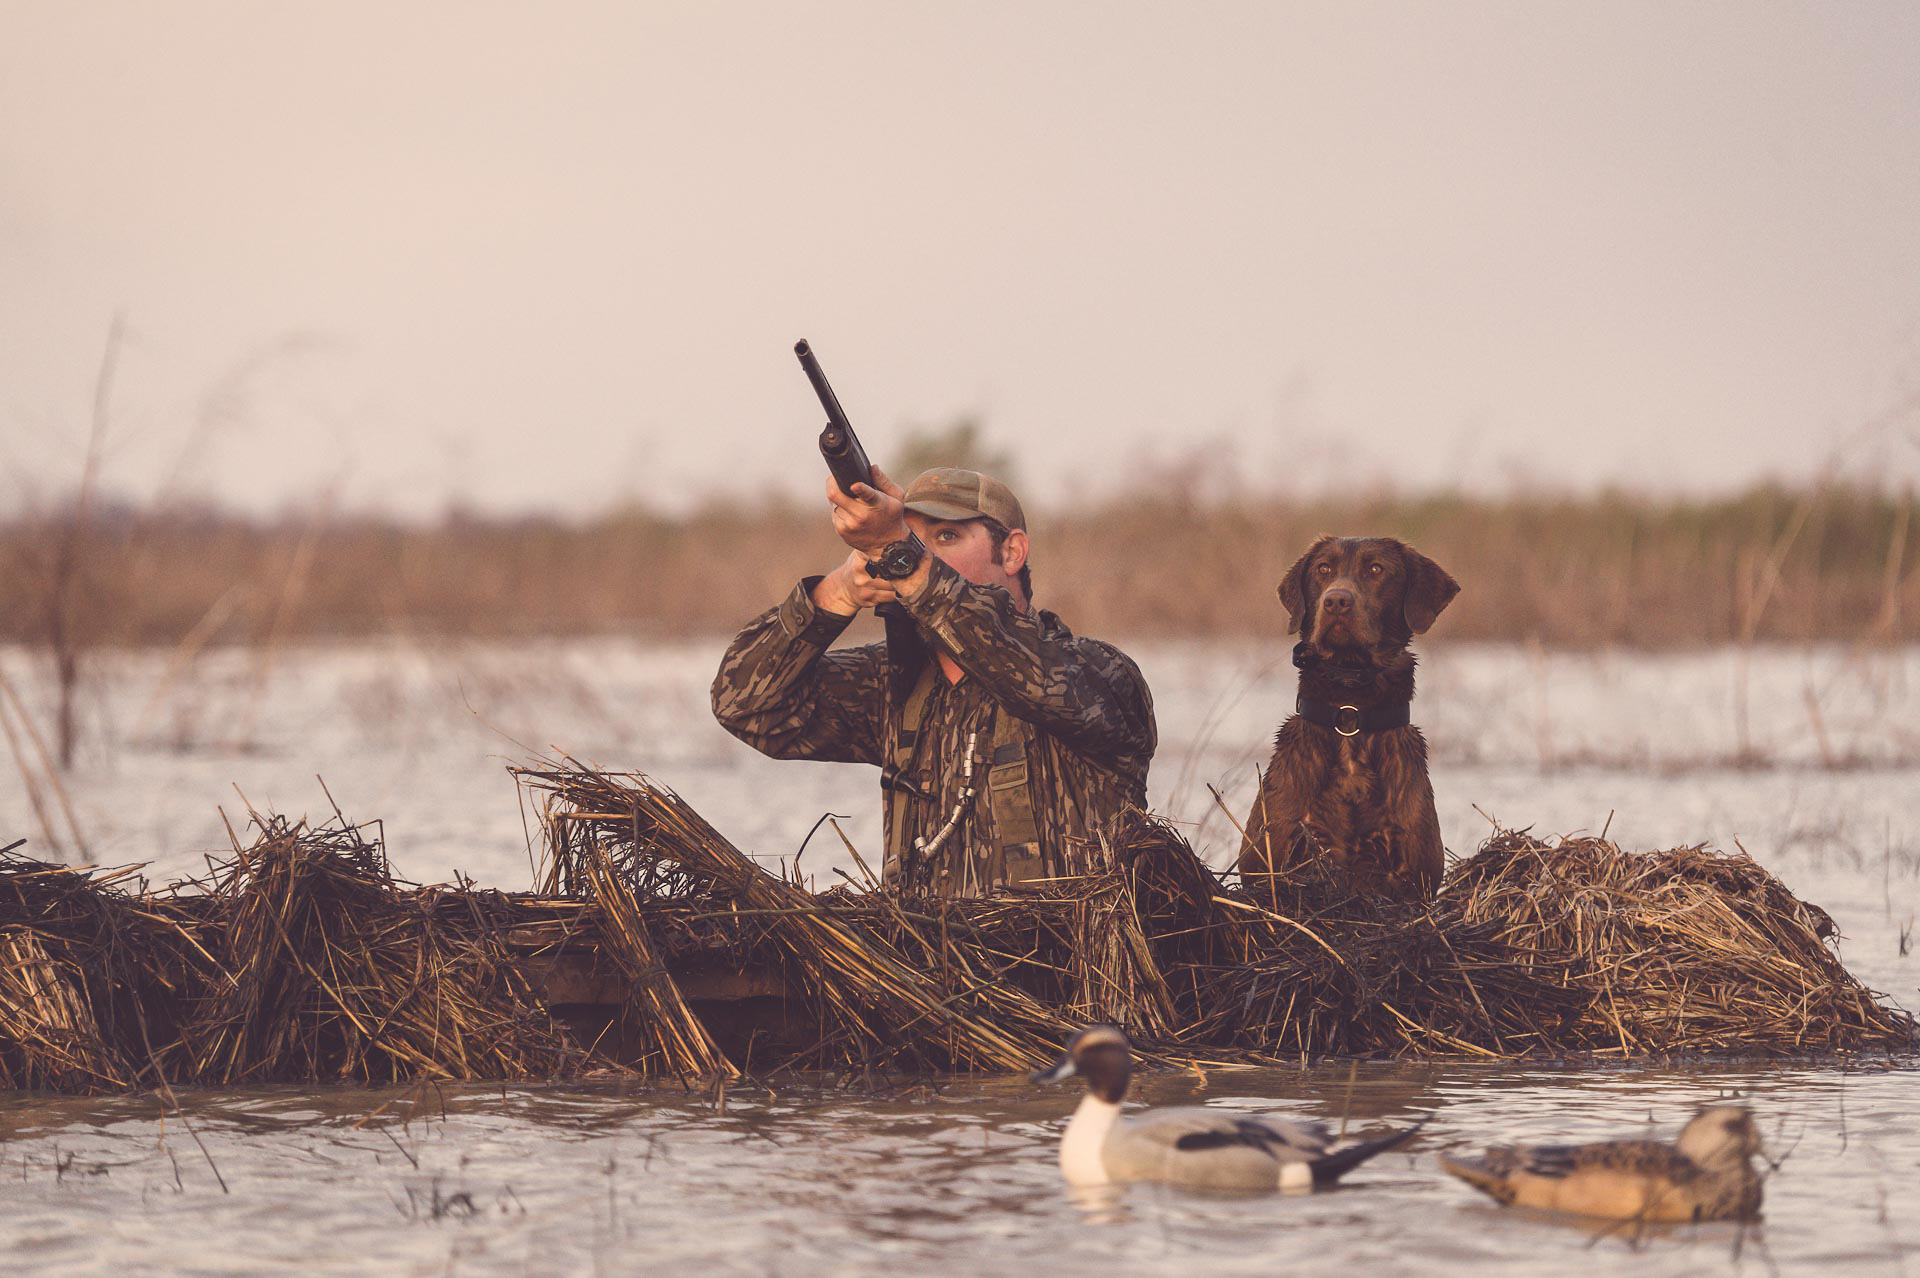 Duck hunter takes aim while in a floating duck blind with chocolate lab. © Tony Bynum